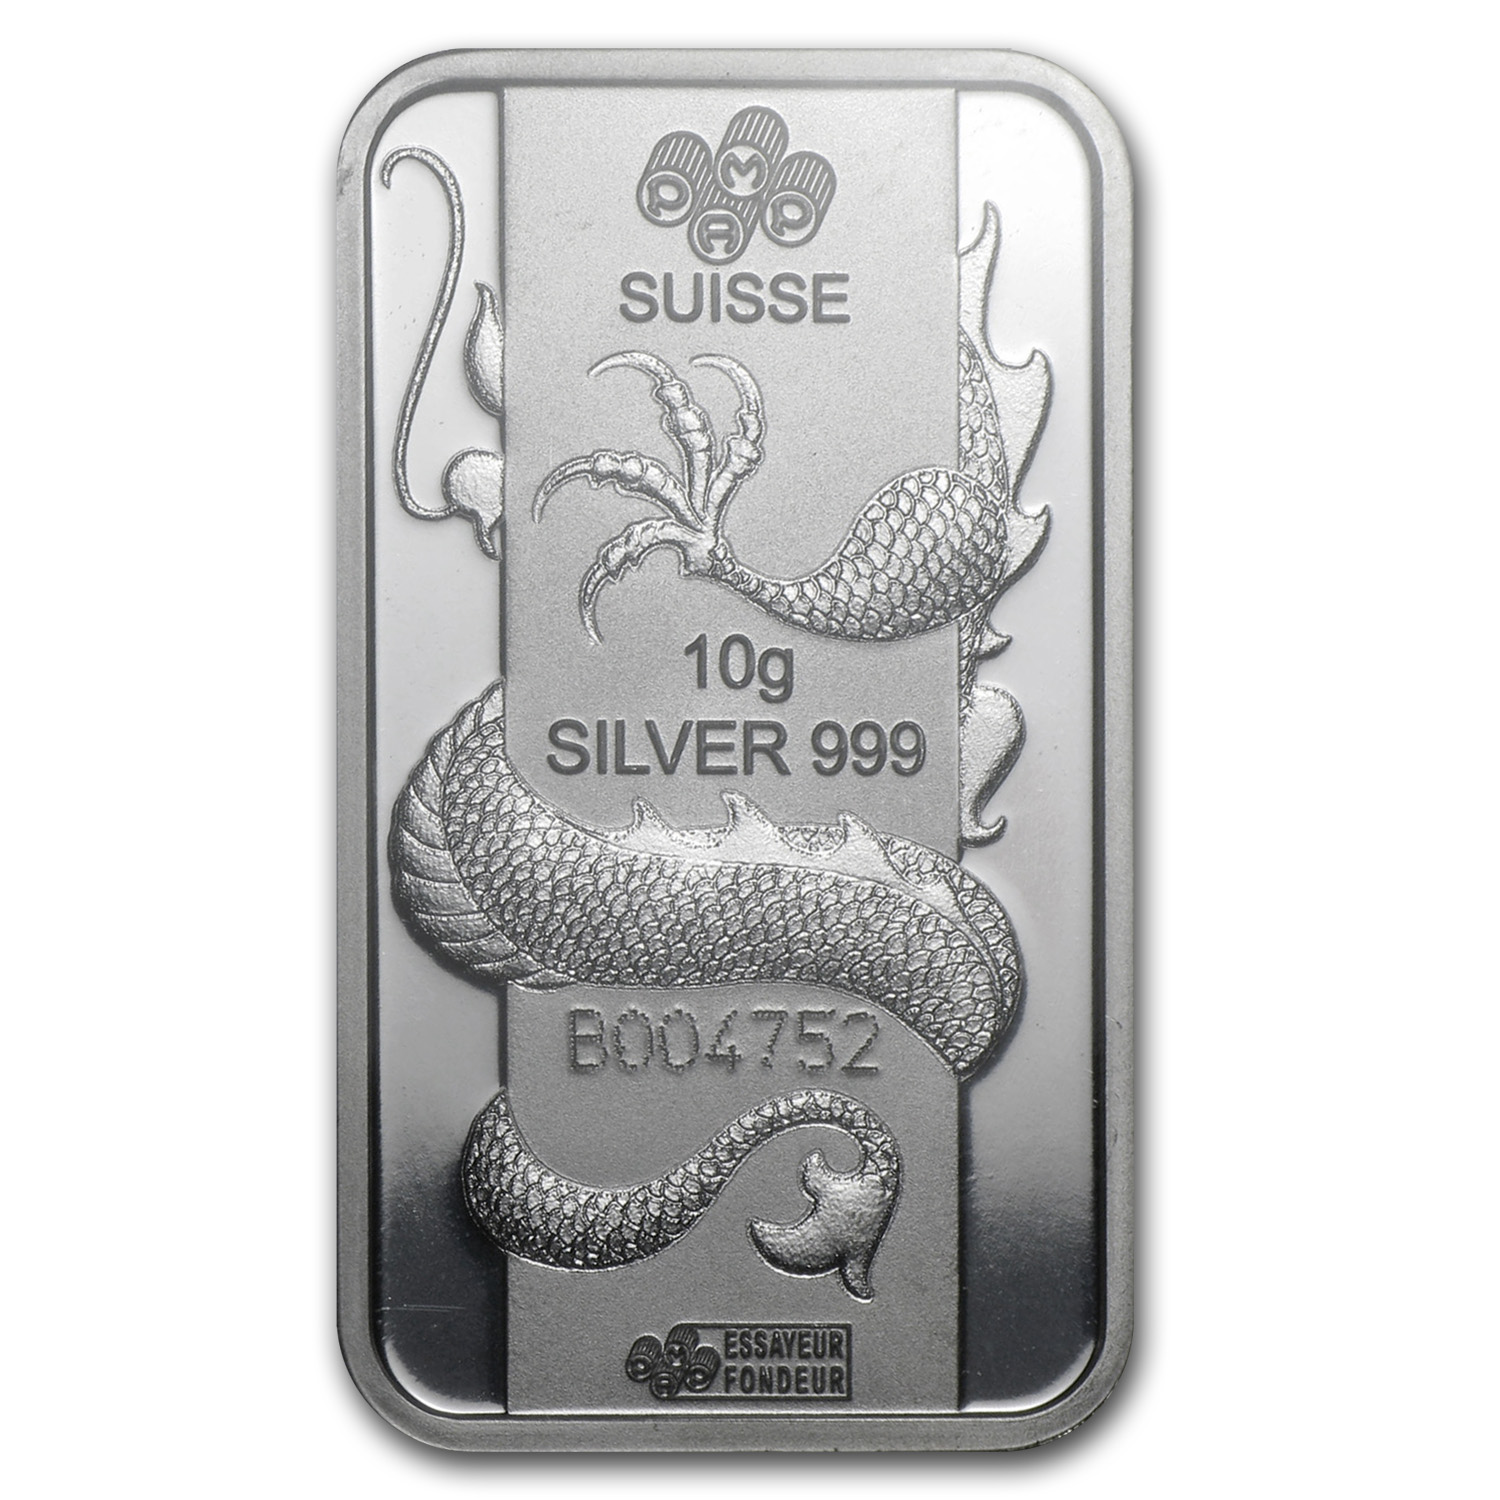 10 gram Silver Bars - Pamp Suisse (Year of the Dragon)